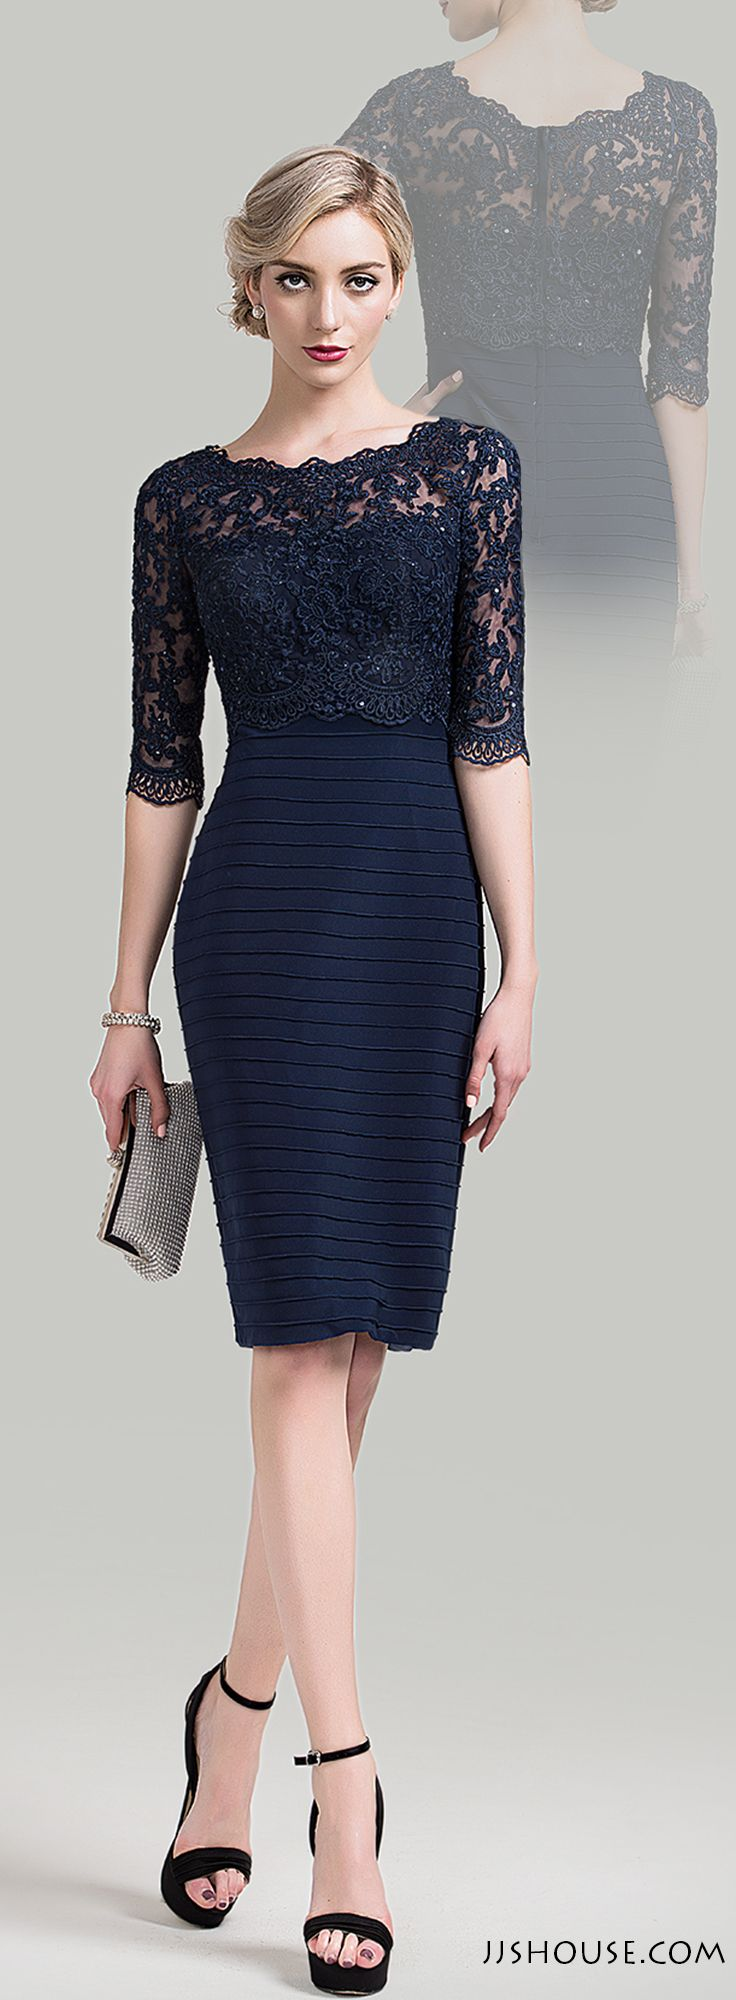 Chic and elegant. The ruffles and lace are so feminine and sophisticated. #Motherofthebridedress